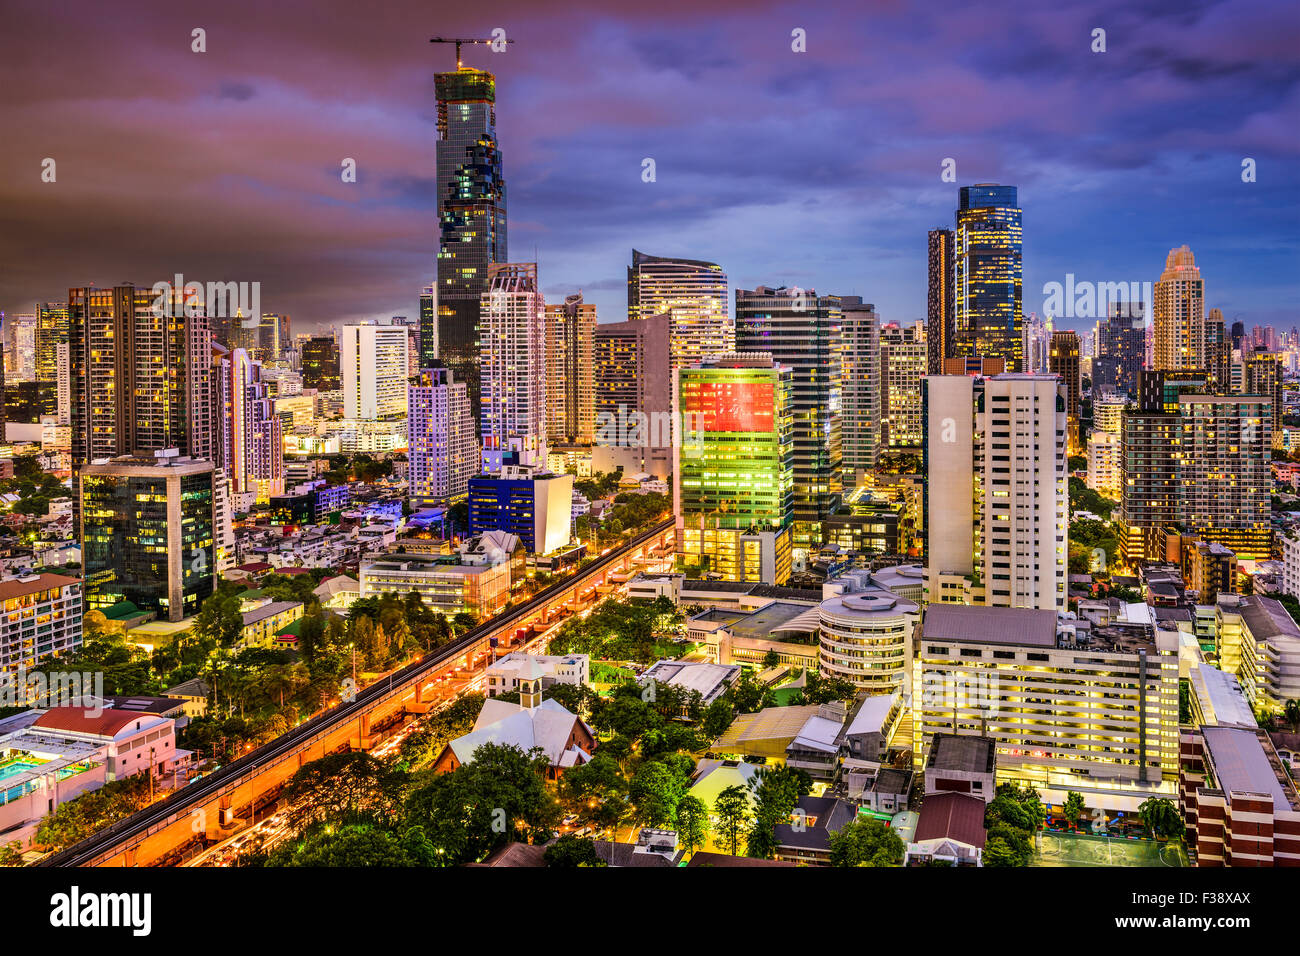 Bangkok, Thailand city skyline. - Stock Image